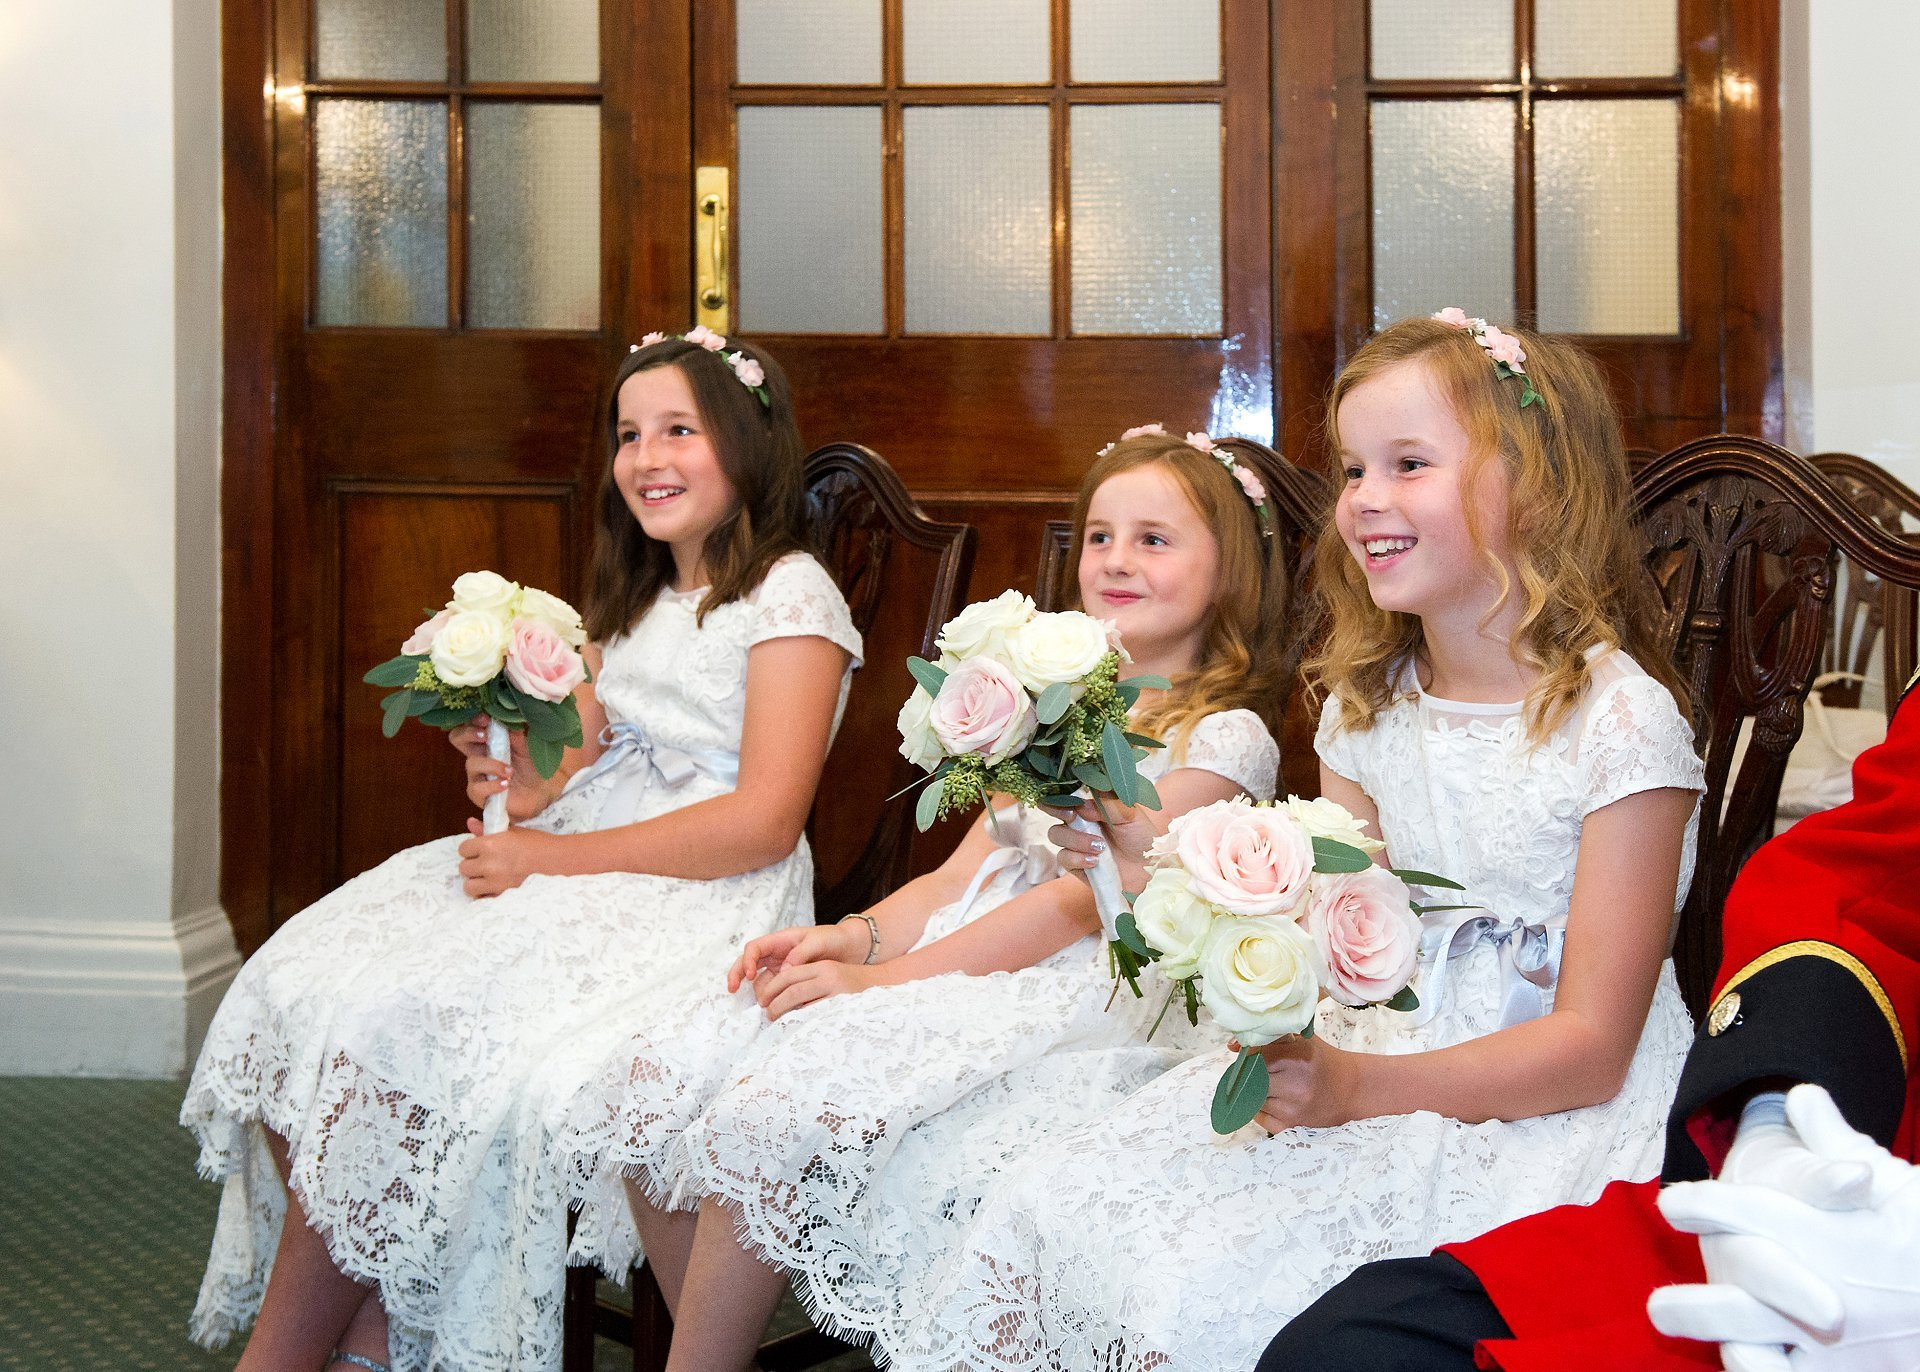 Three small girls smile with delight as their parents sign the official marriage register in teh Rossetti Room at Chelsea Old Town Hall